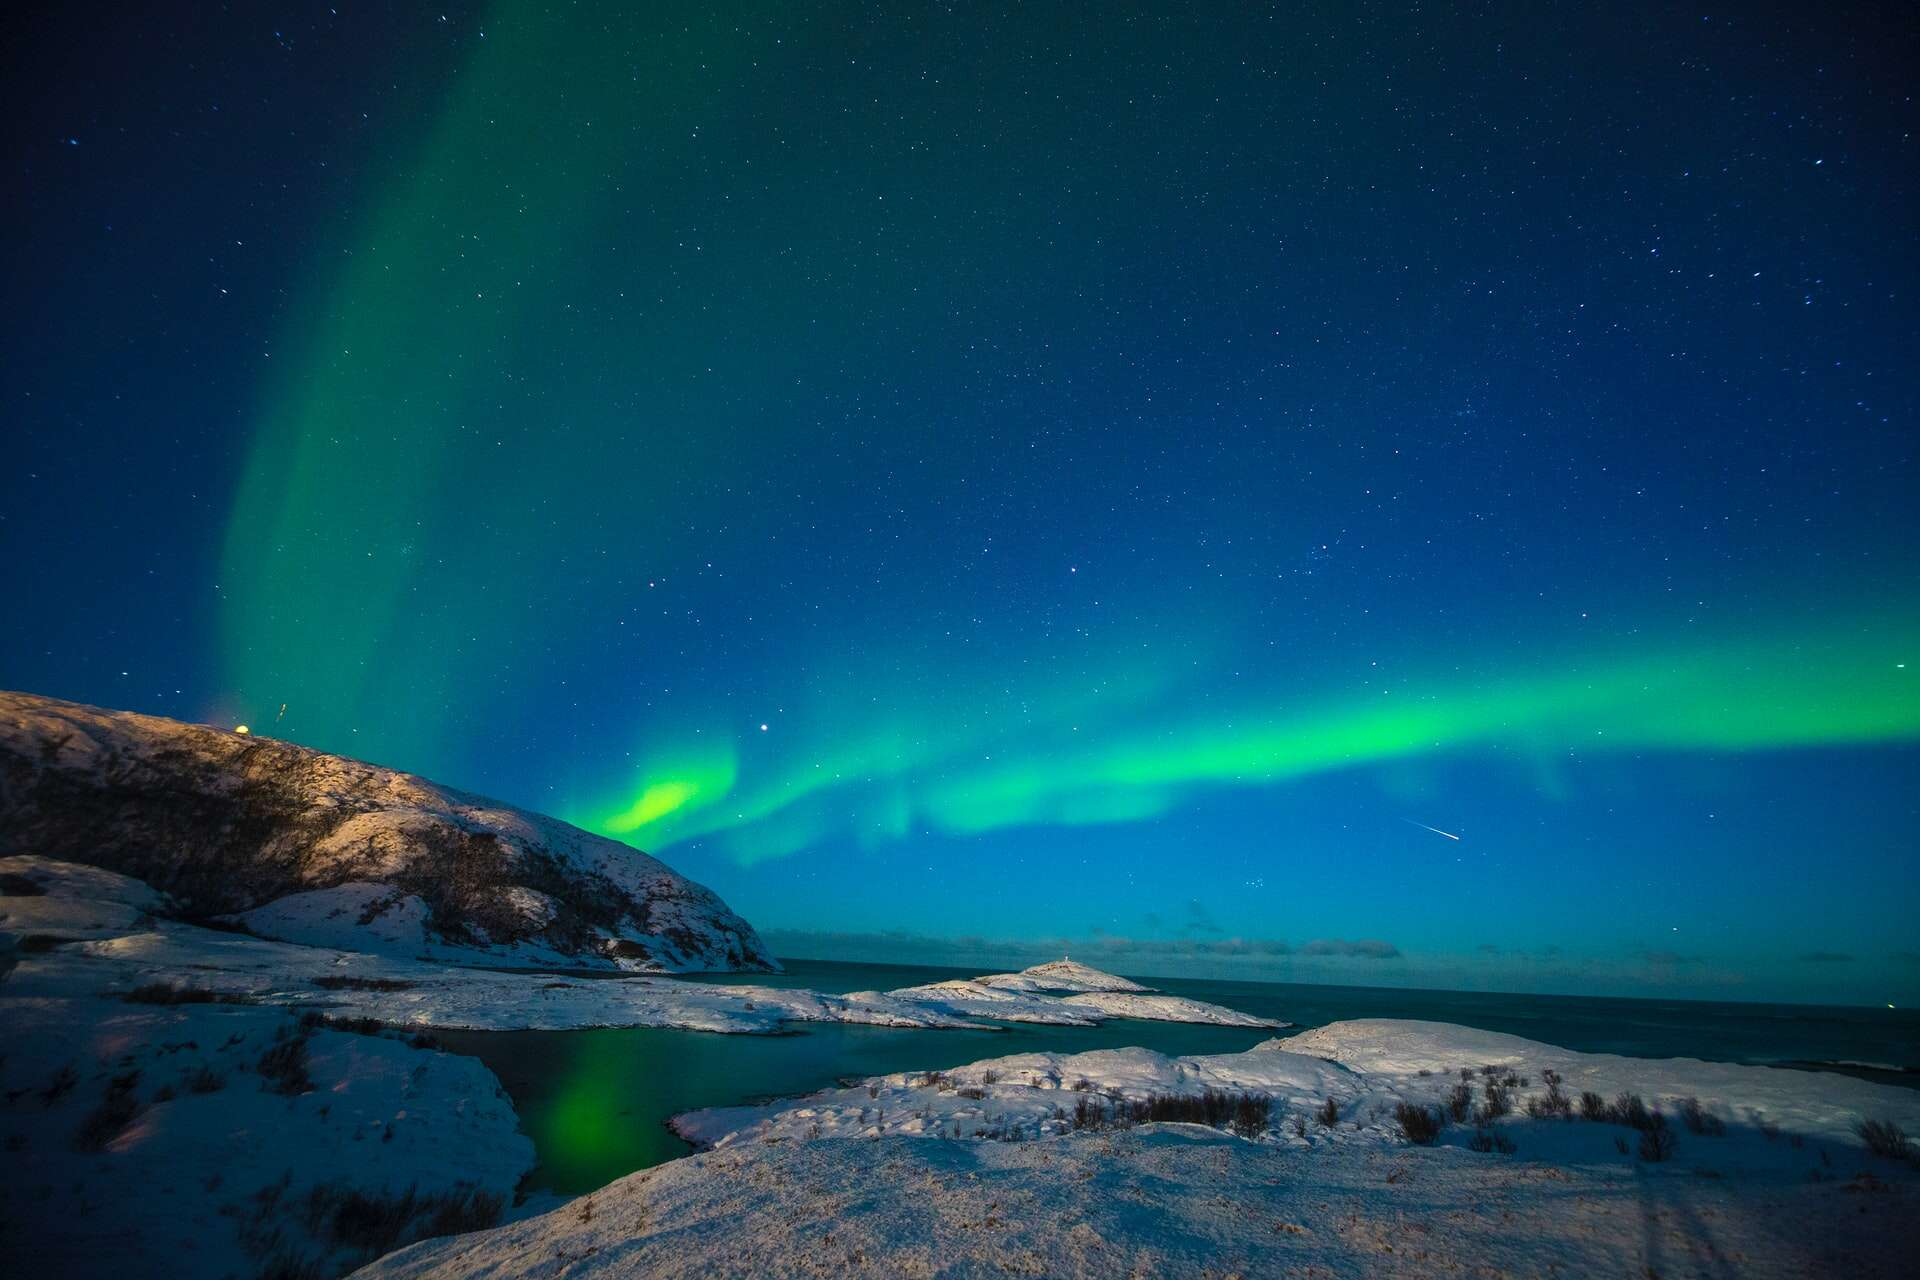 If you have ever wanted to see the Northern Lights, this is the way to do it!